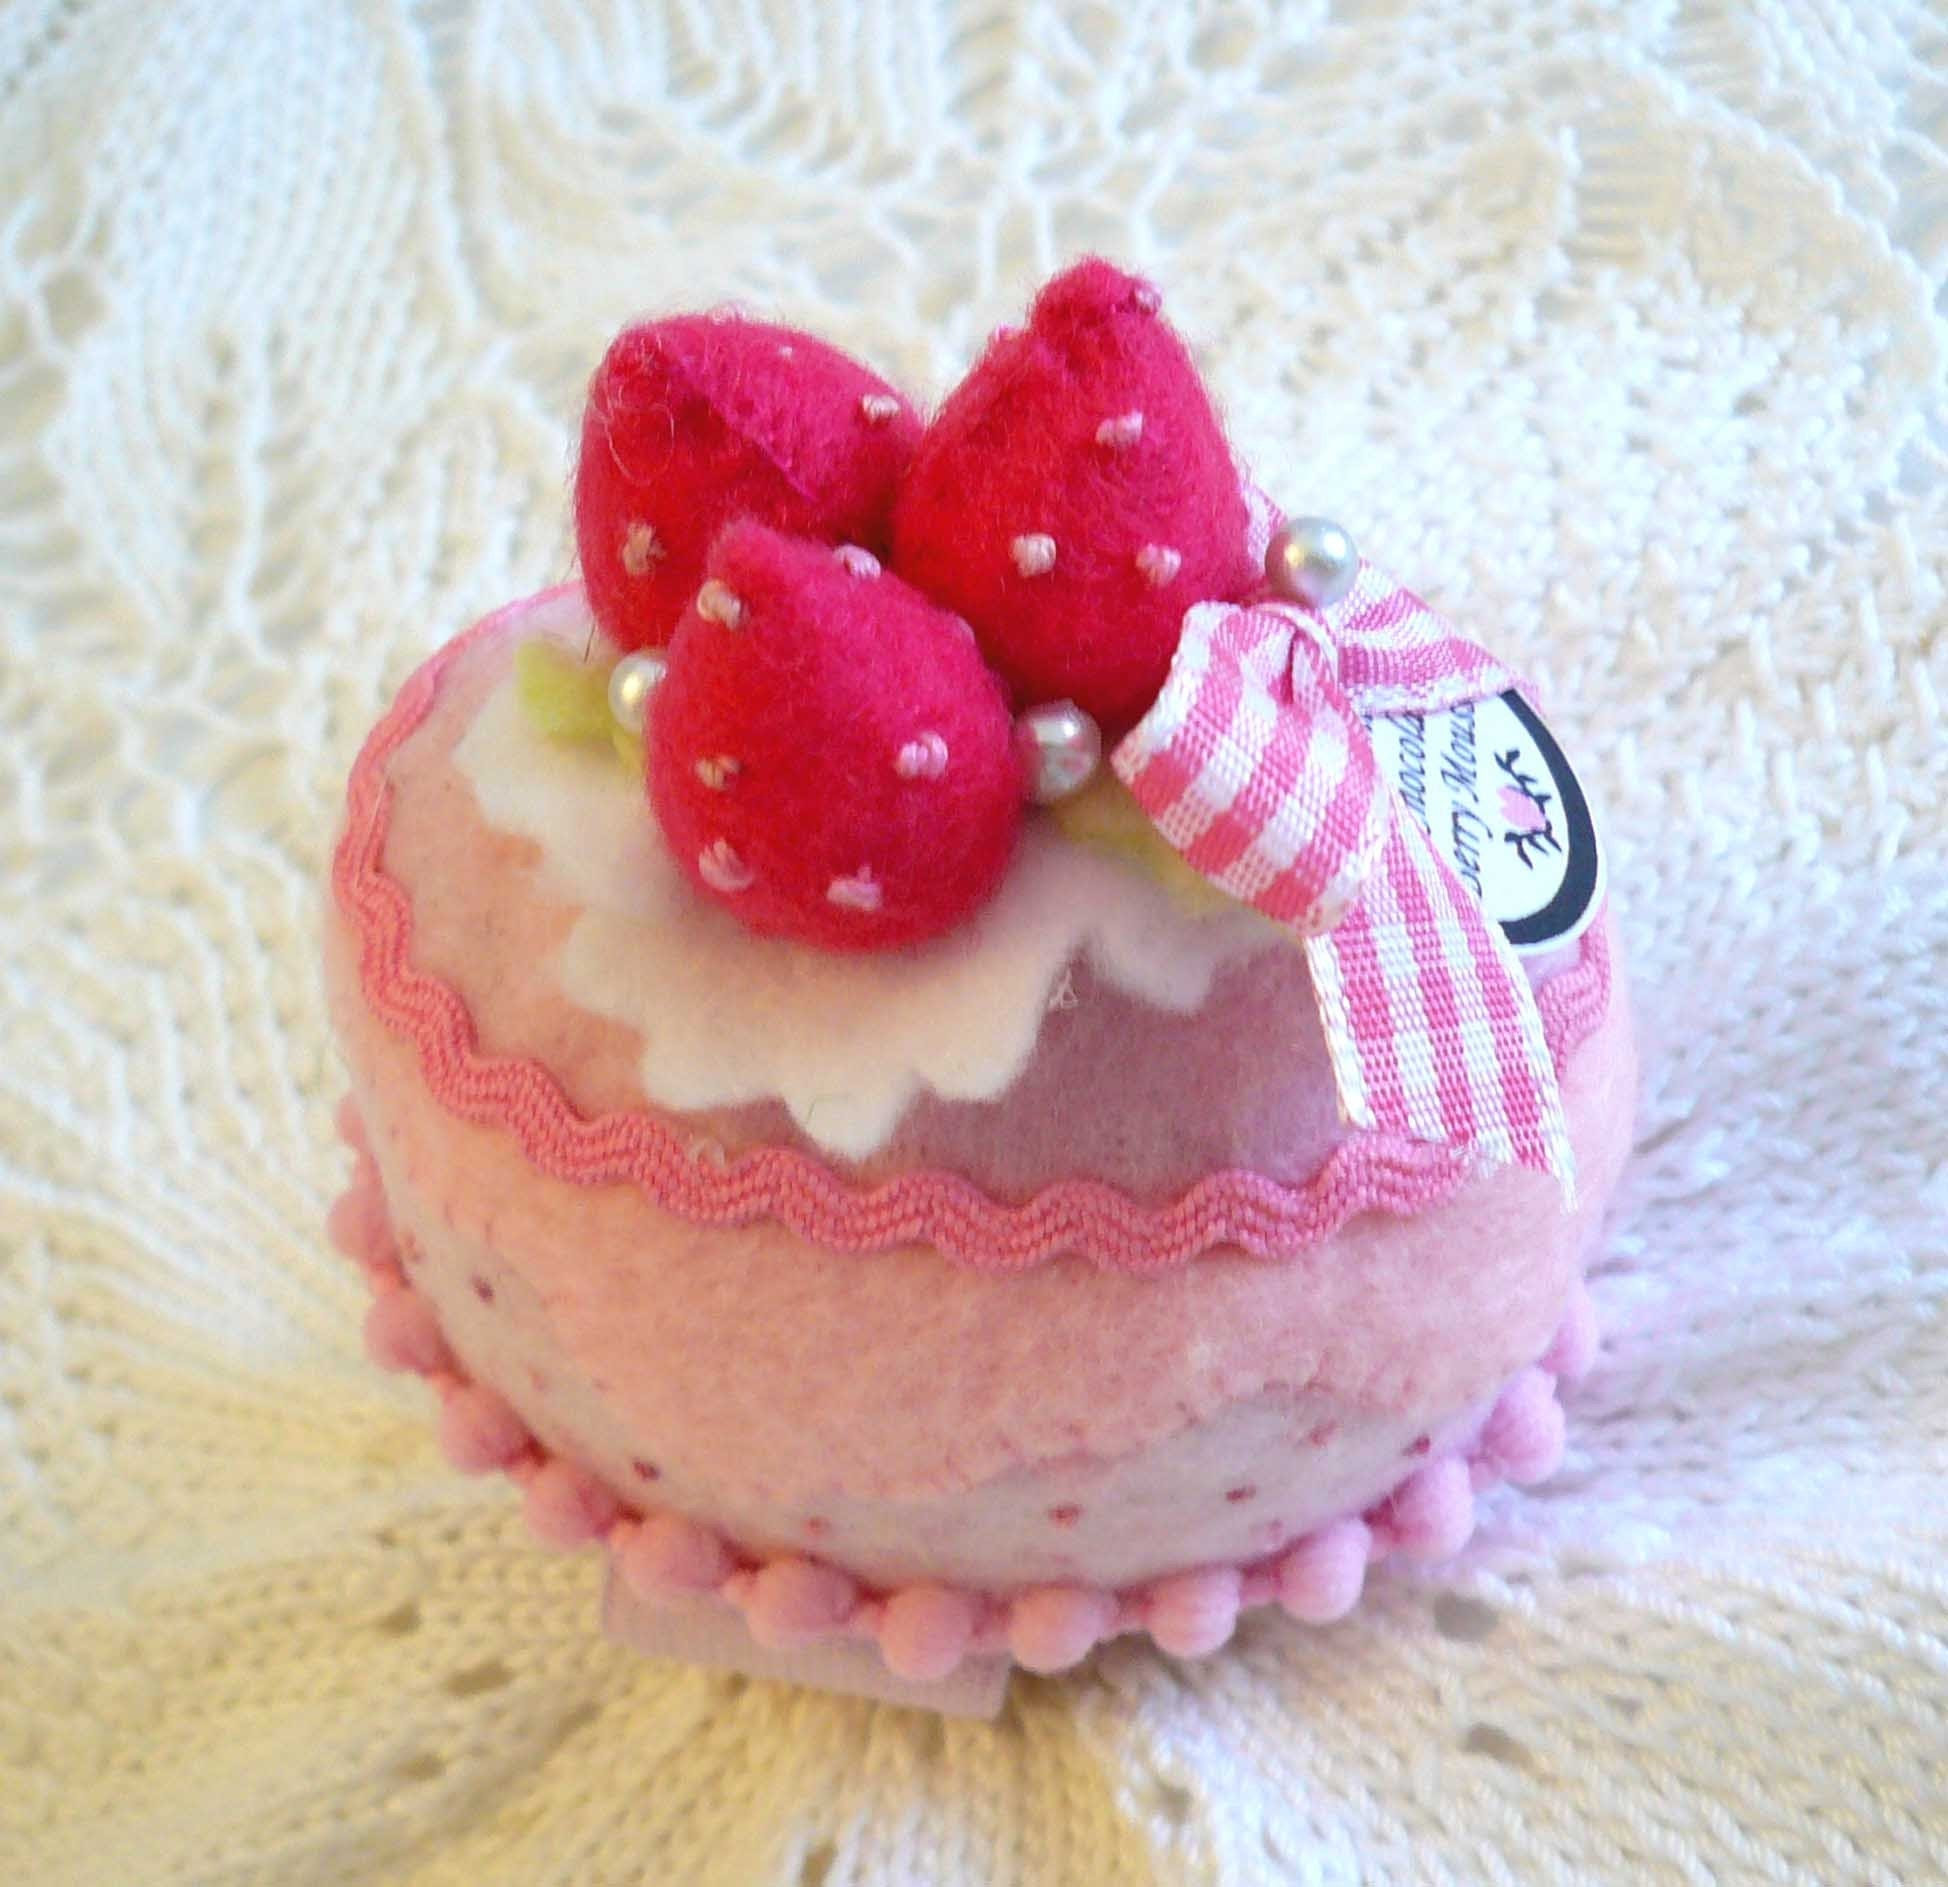 Pink choco berry mousse wrist band pin cushion